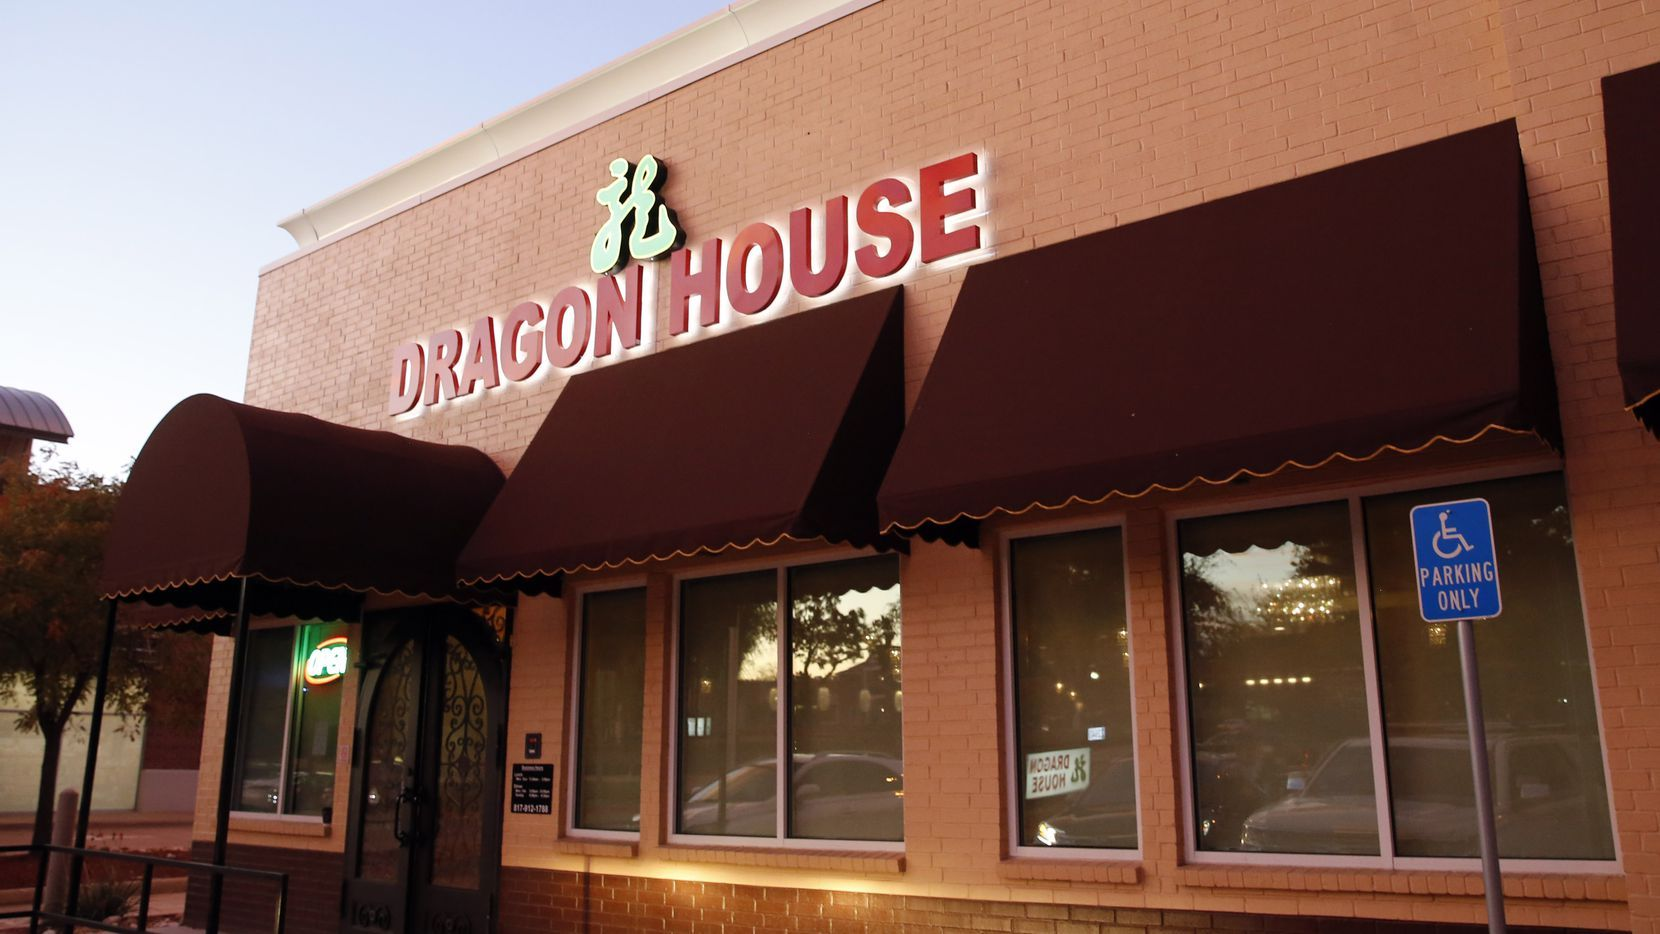 Dragon House A New Three Star Chinese Restaurant In Southlake Is Closed In A Vice Raid Dragon House Chinese Restaurant Southlake